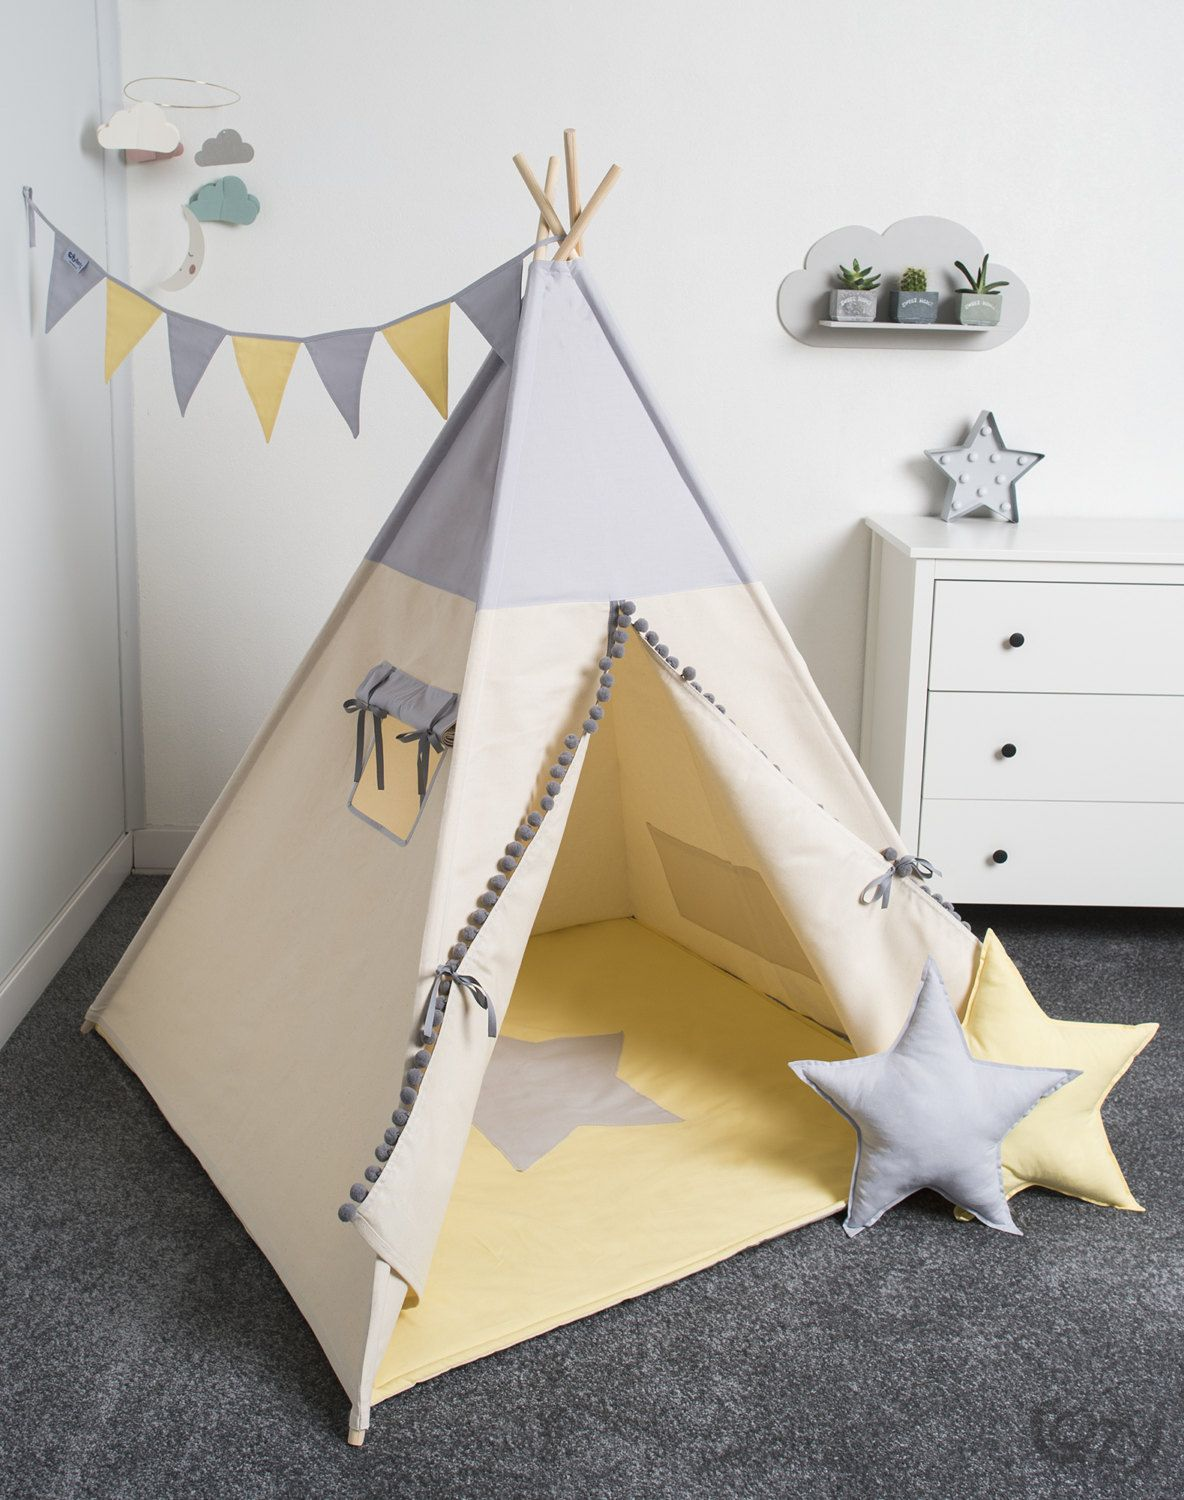 indian teepee kids play tent tipi tente indienne tente de teepee tents pour enfant set 6